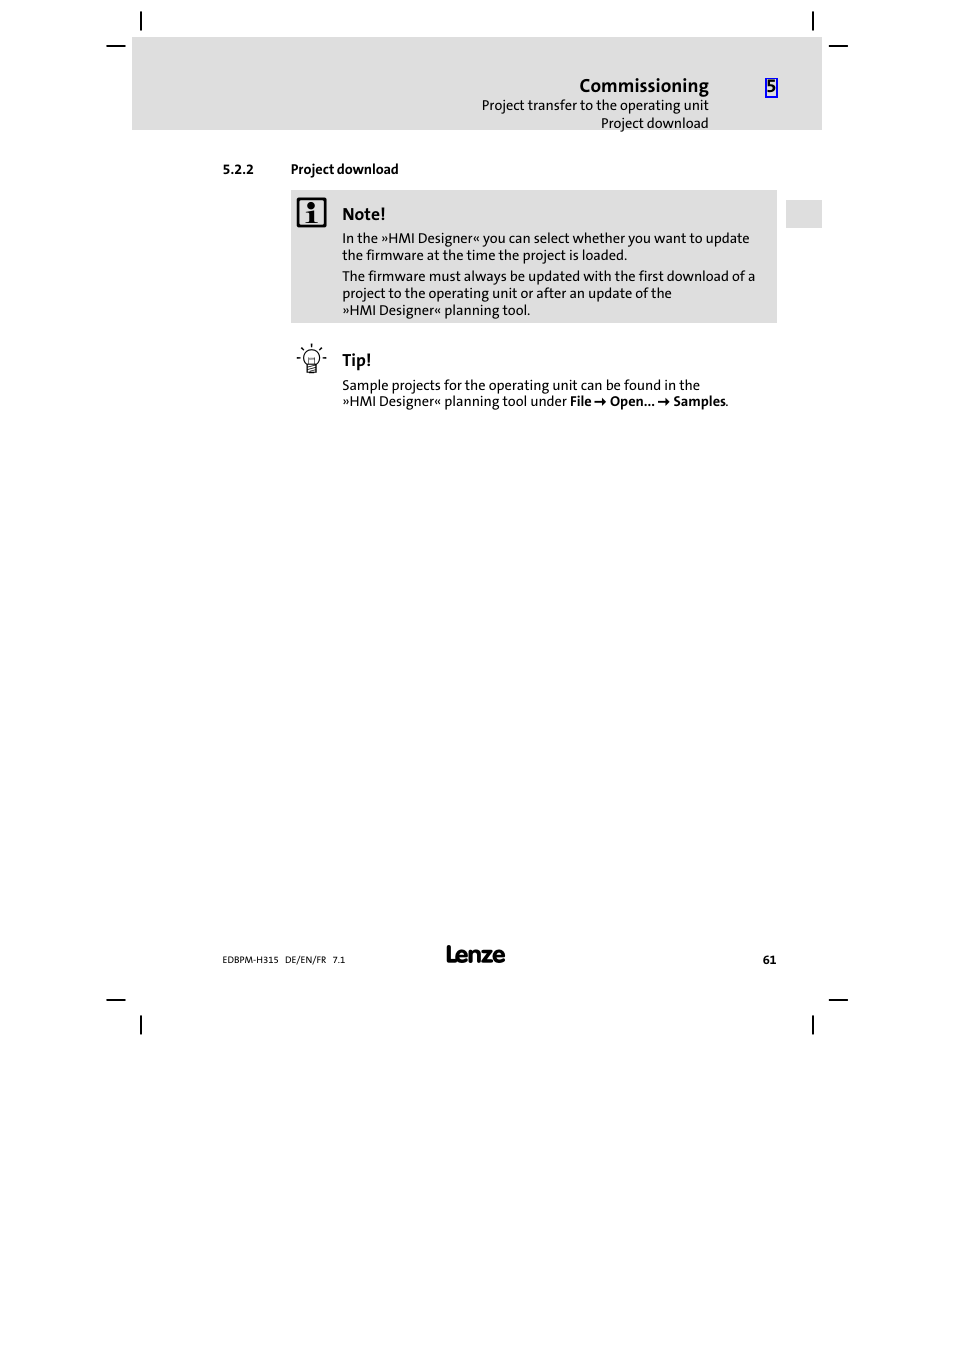 project download lenze epm h315 user manual page 61 108 rh manualsdir com open project user manual open project user guide free download